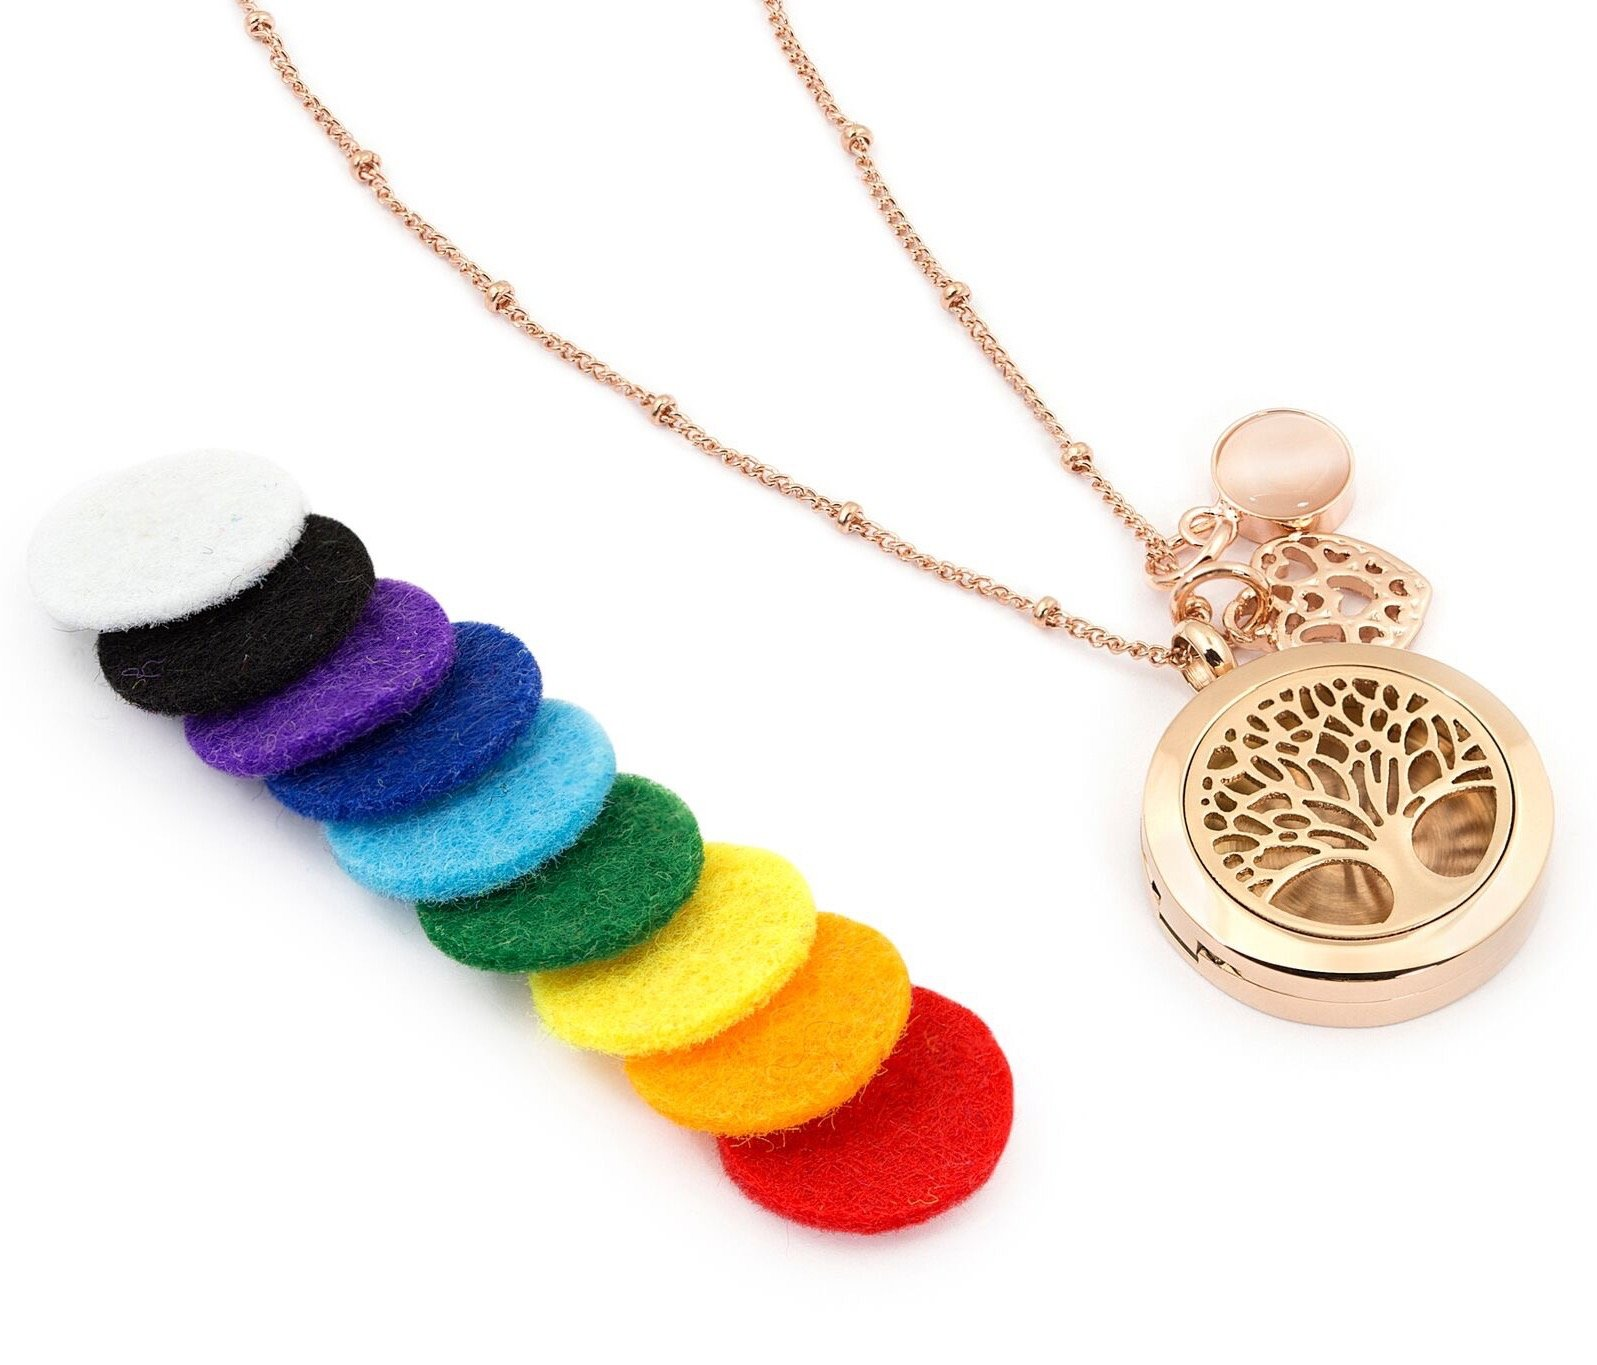 Amazoncom 1 Rose Gold Essential Oil Diffuser Necklace